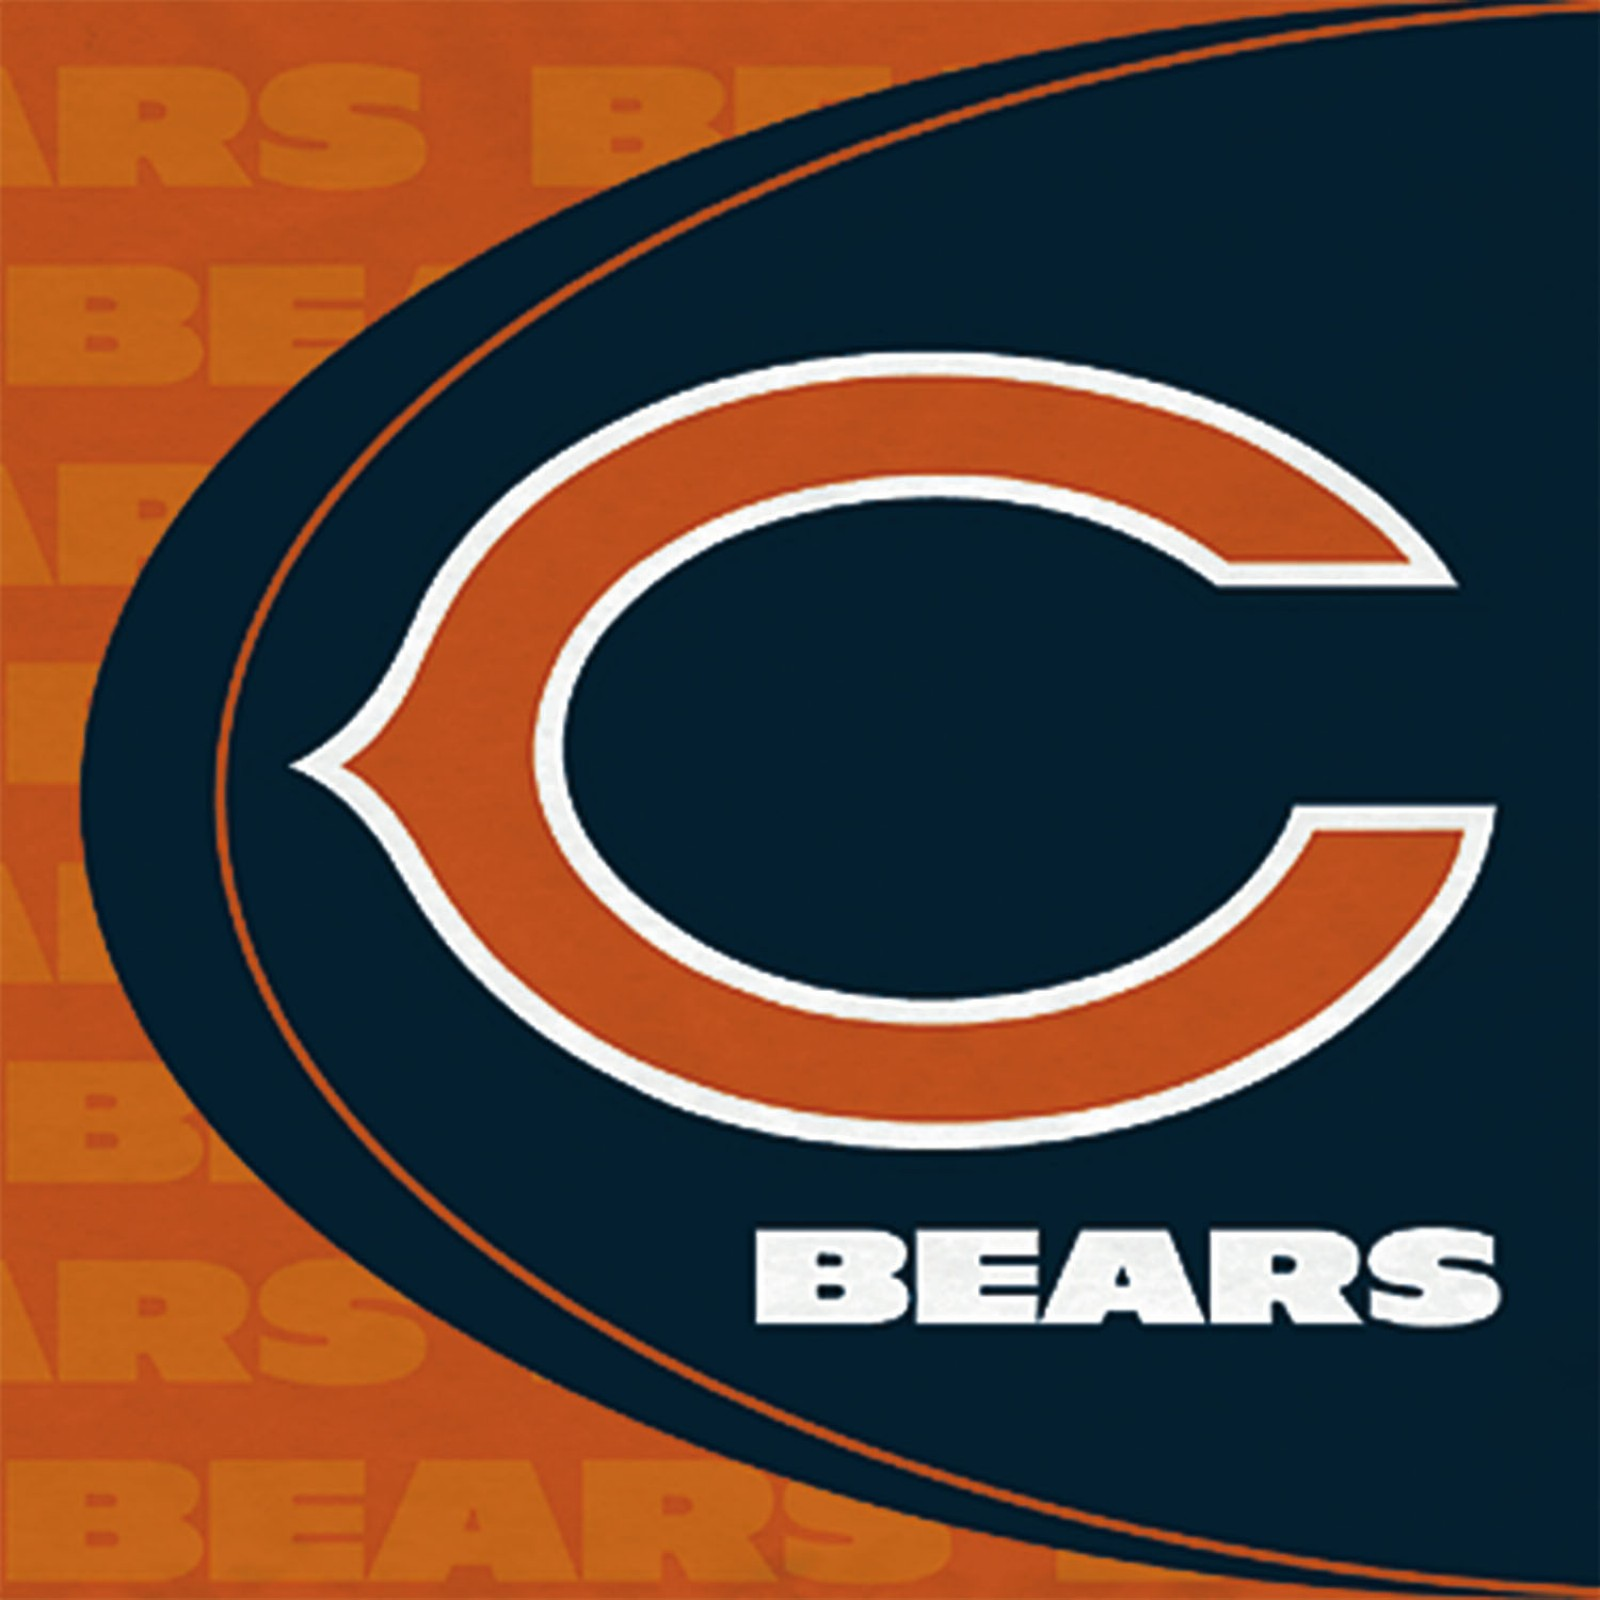 Chicago Bears Digital Software Blogging and Games 1600x1600